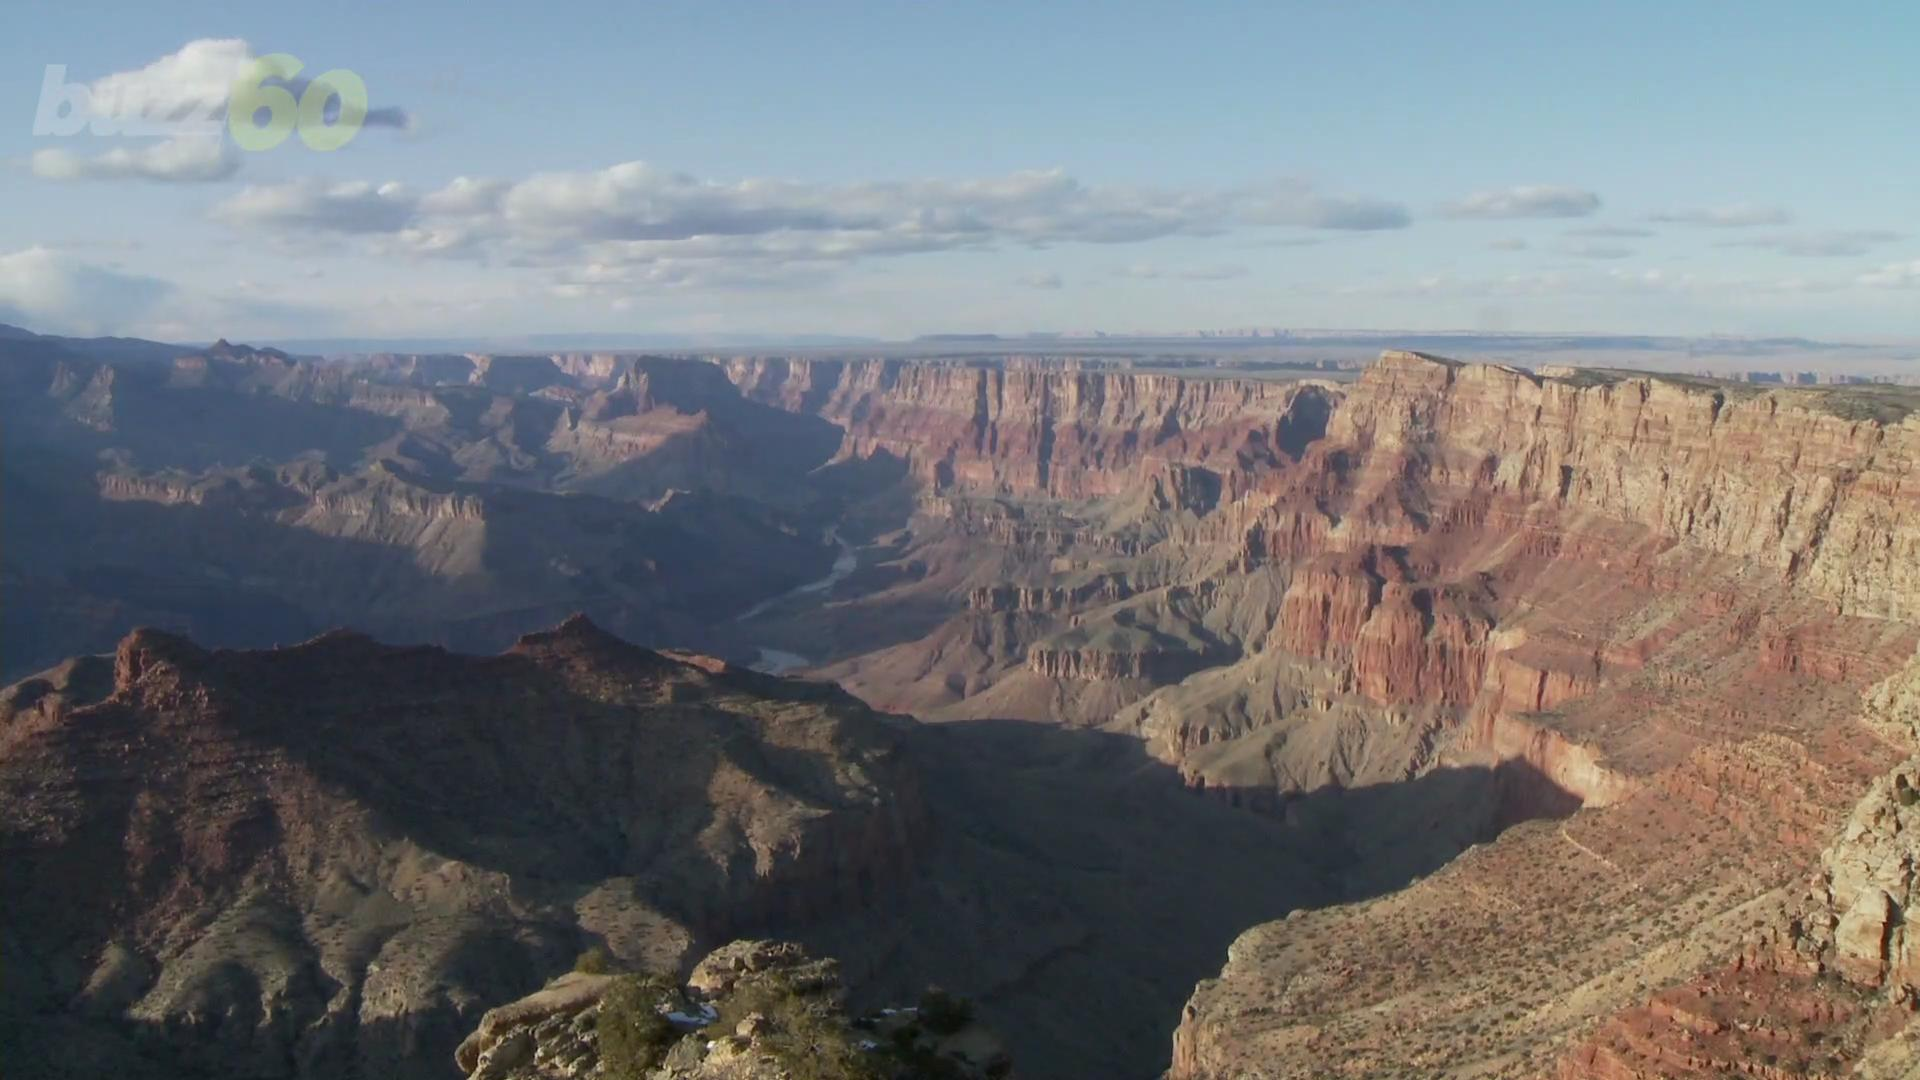 Man Sues Grand Canyon for Not Letting Him Study Its Rocks